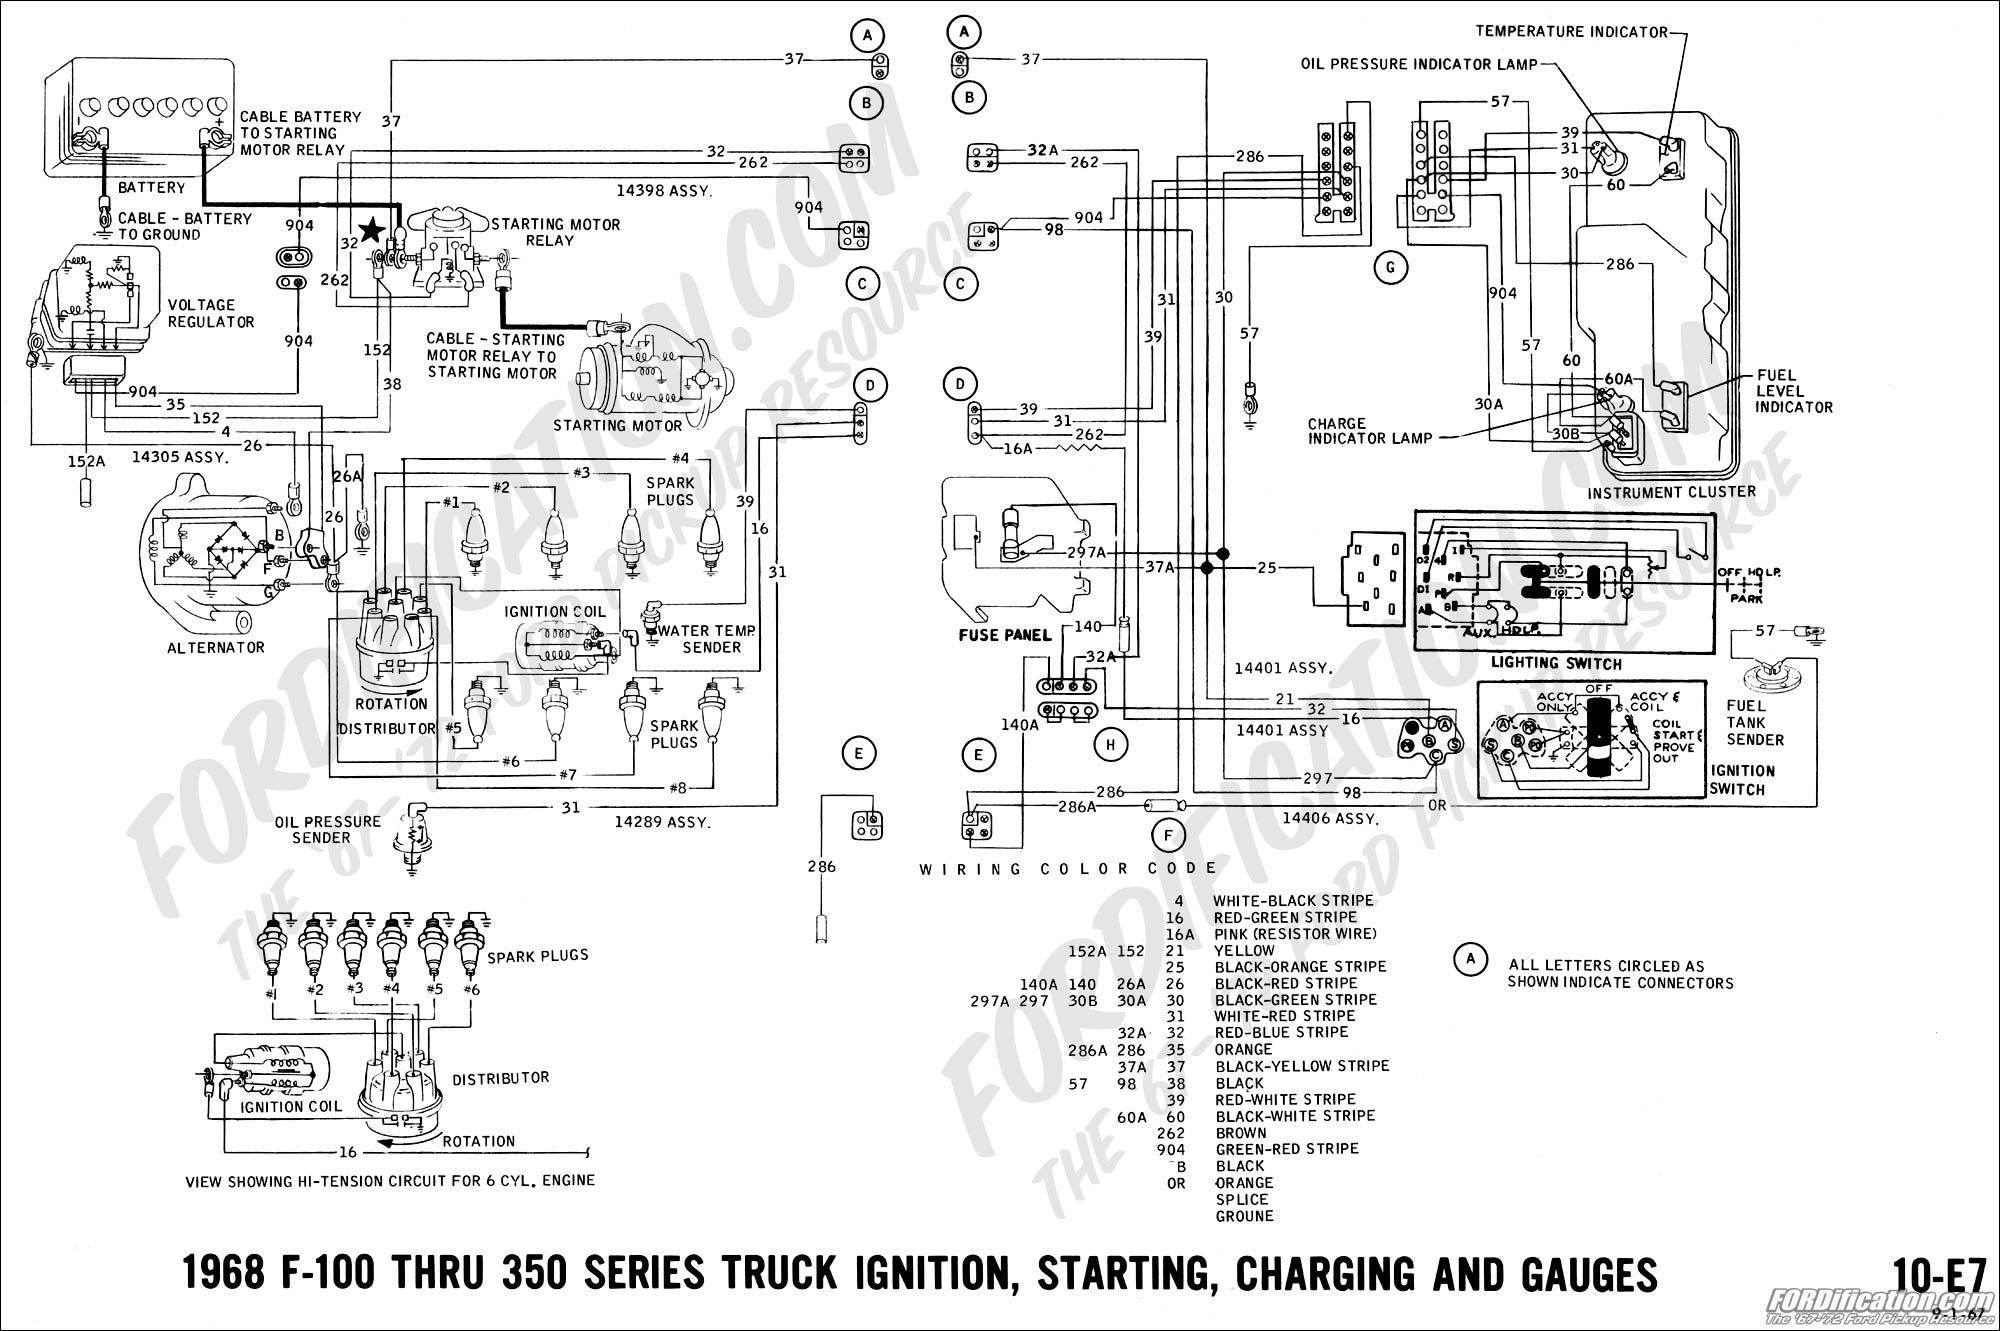 68 09 ford truck technical drawings and schematics section h wiring 2000 ford expedition ignition wiring diagram at gsmx.co